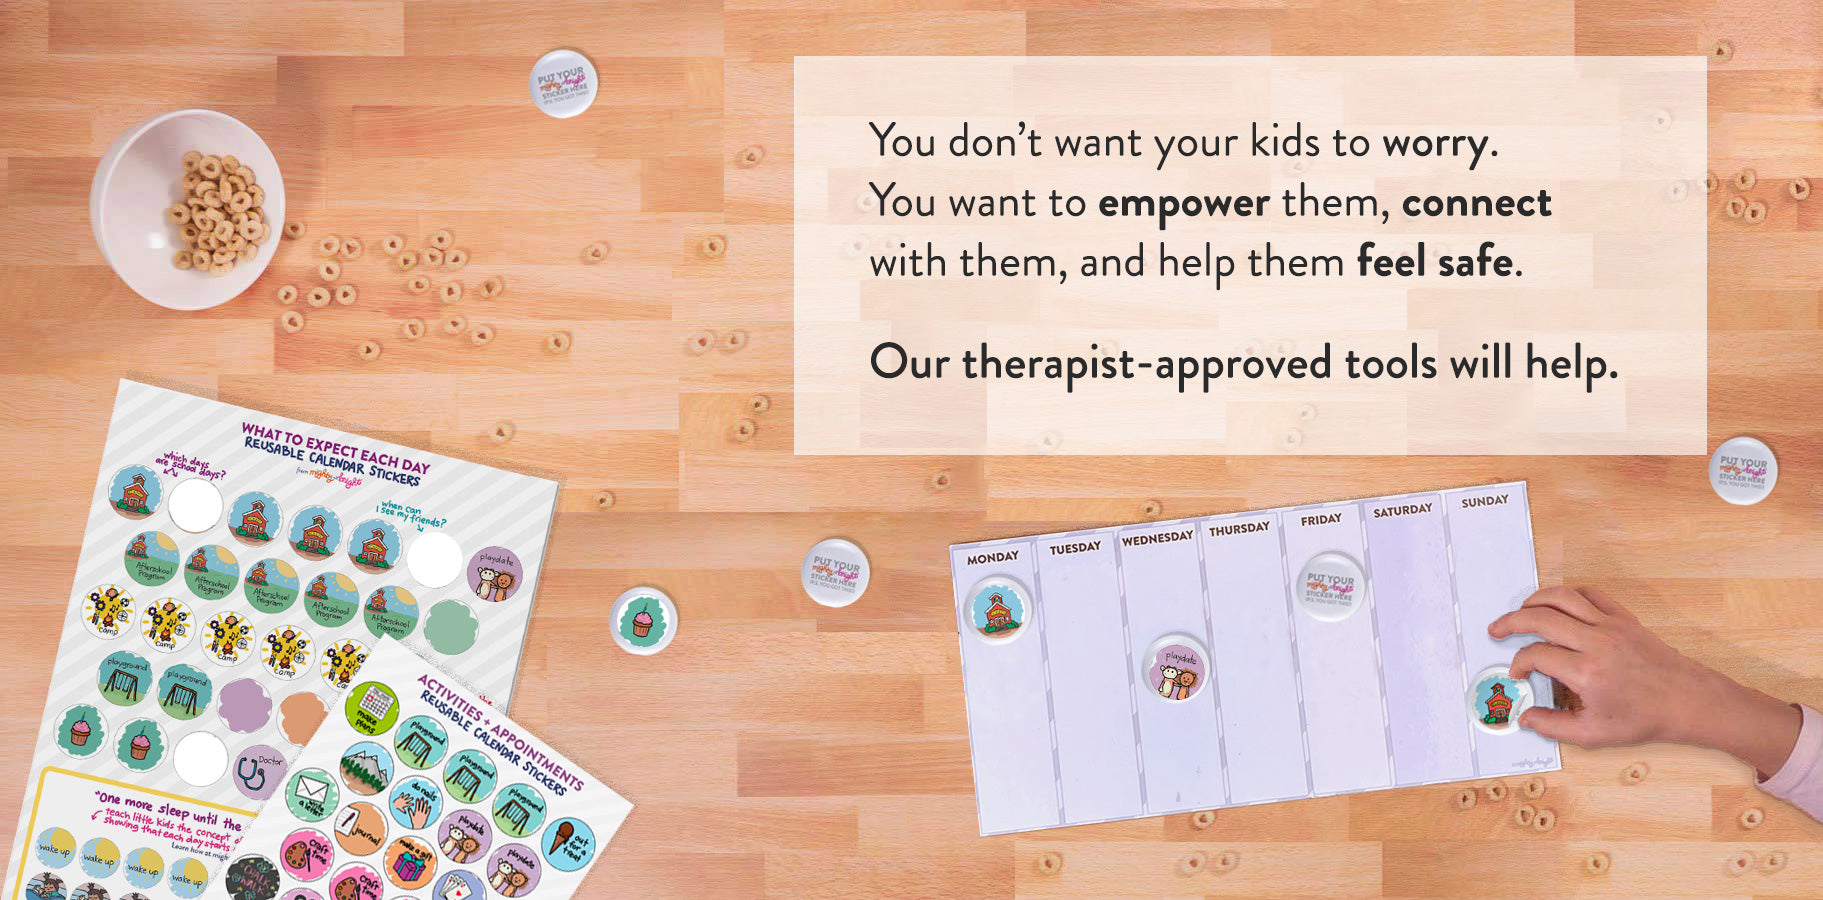 You don't want your kids to worry. You want to empower them, connect  with them, and help them feel safe.  Our therapist-approved tools will help.